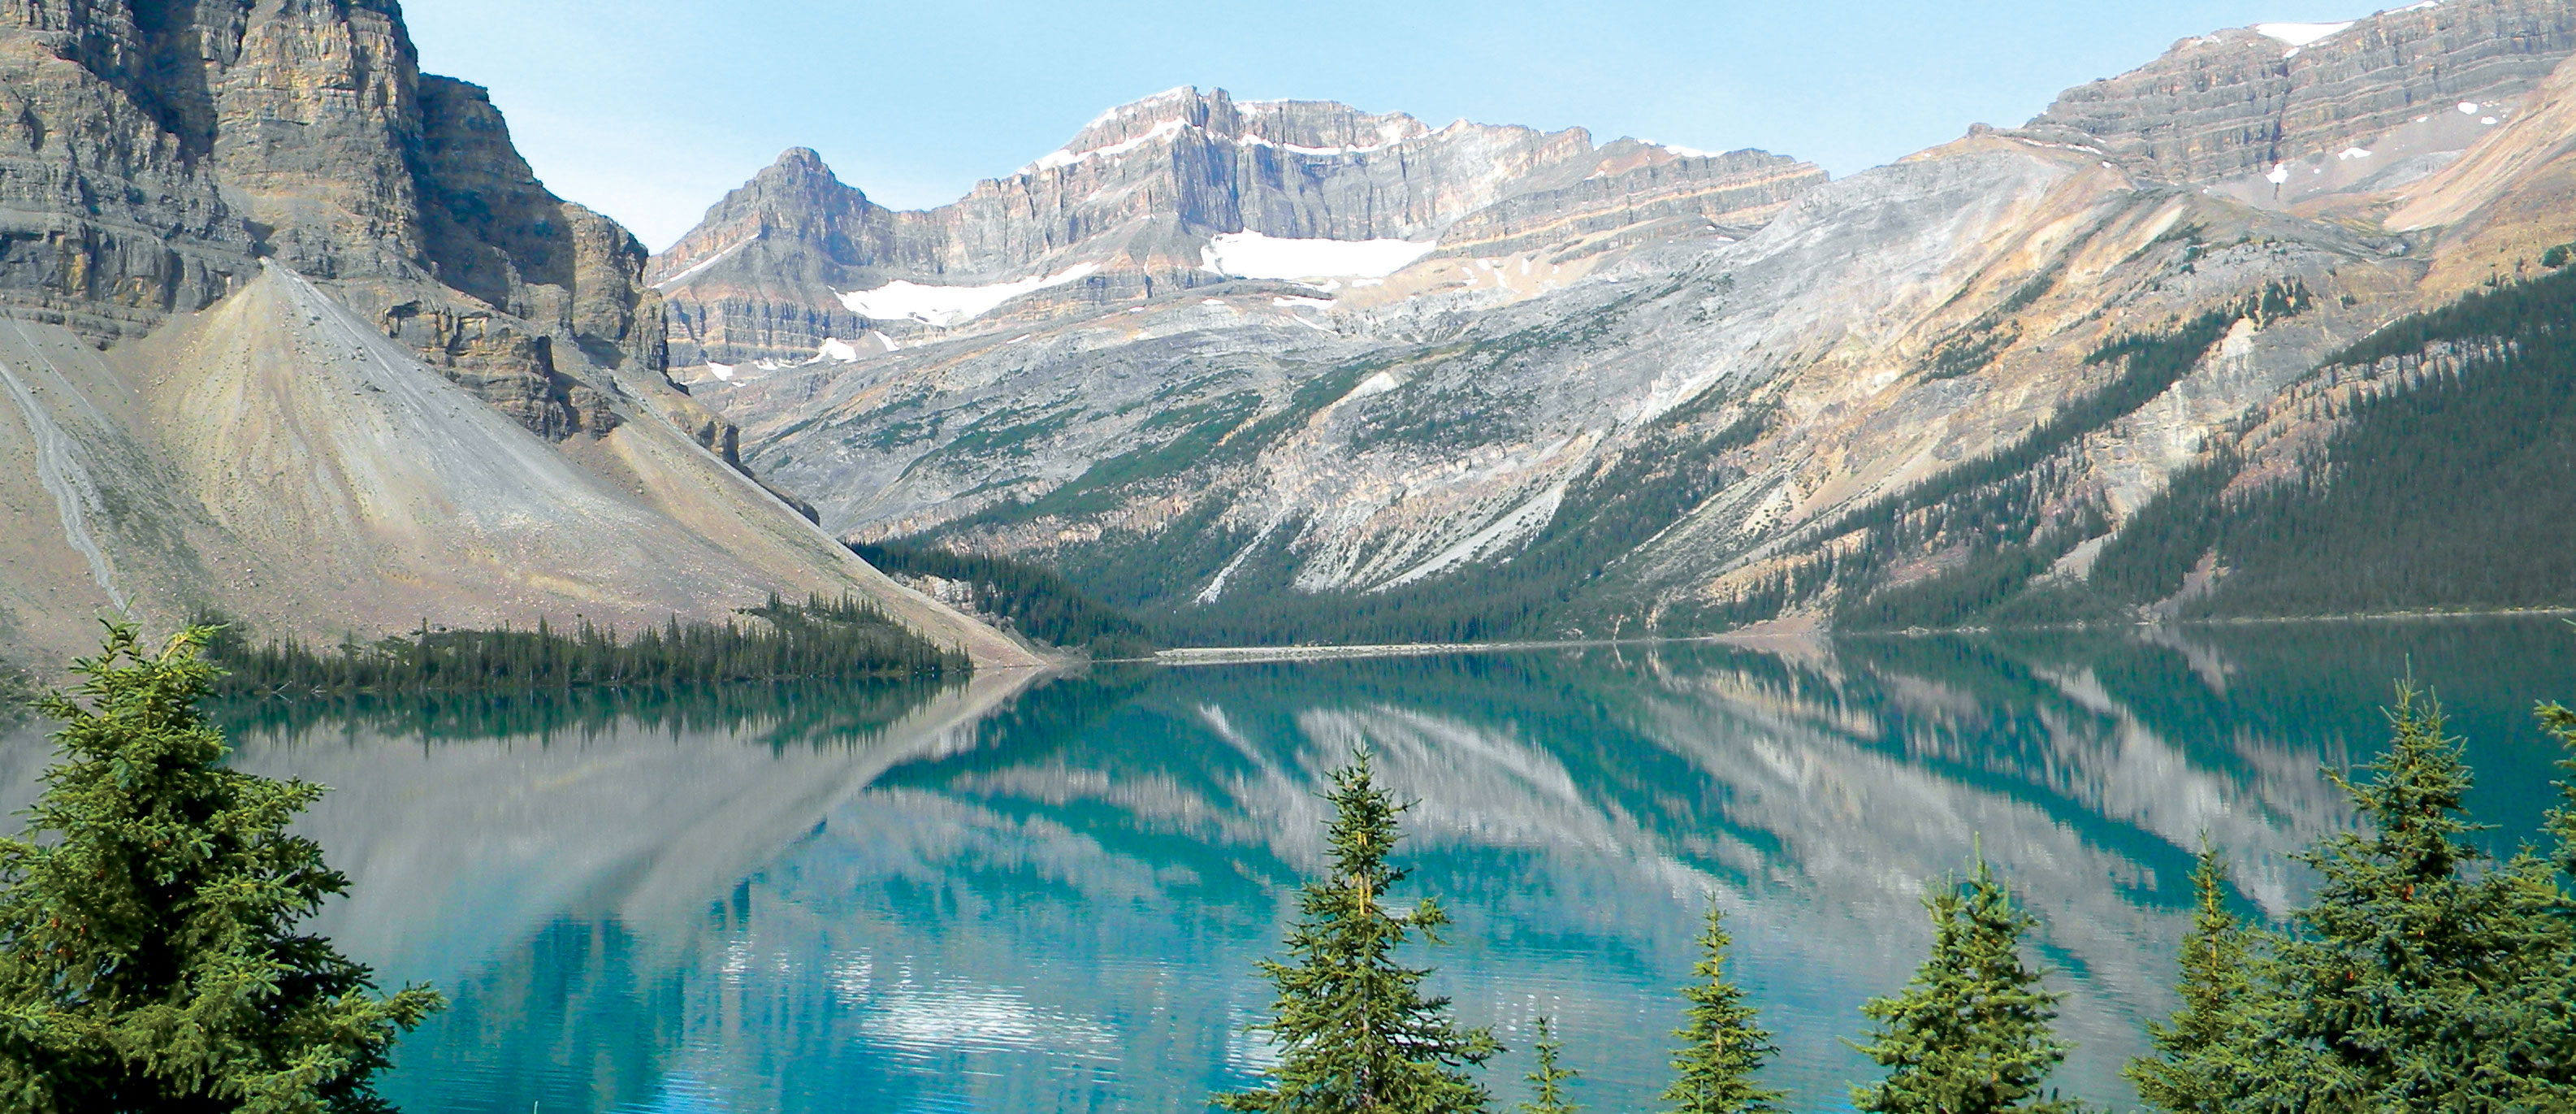 Canadian Rockies Tour Full Call To Be On Waitlist 1 800